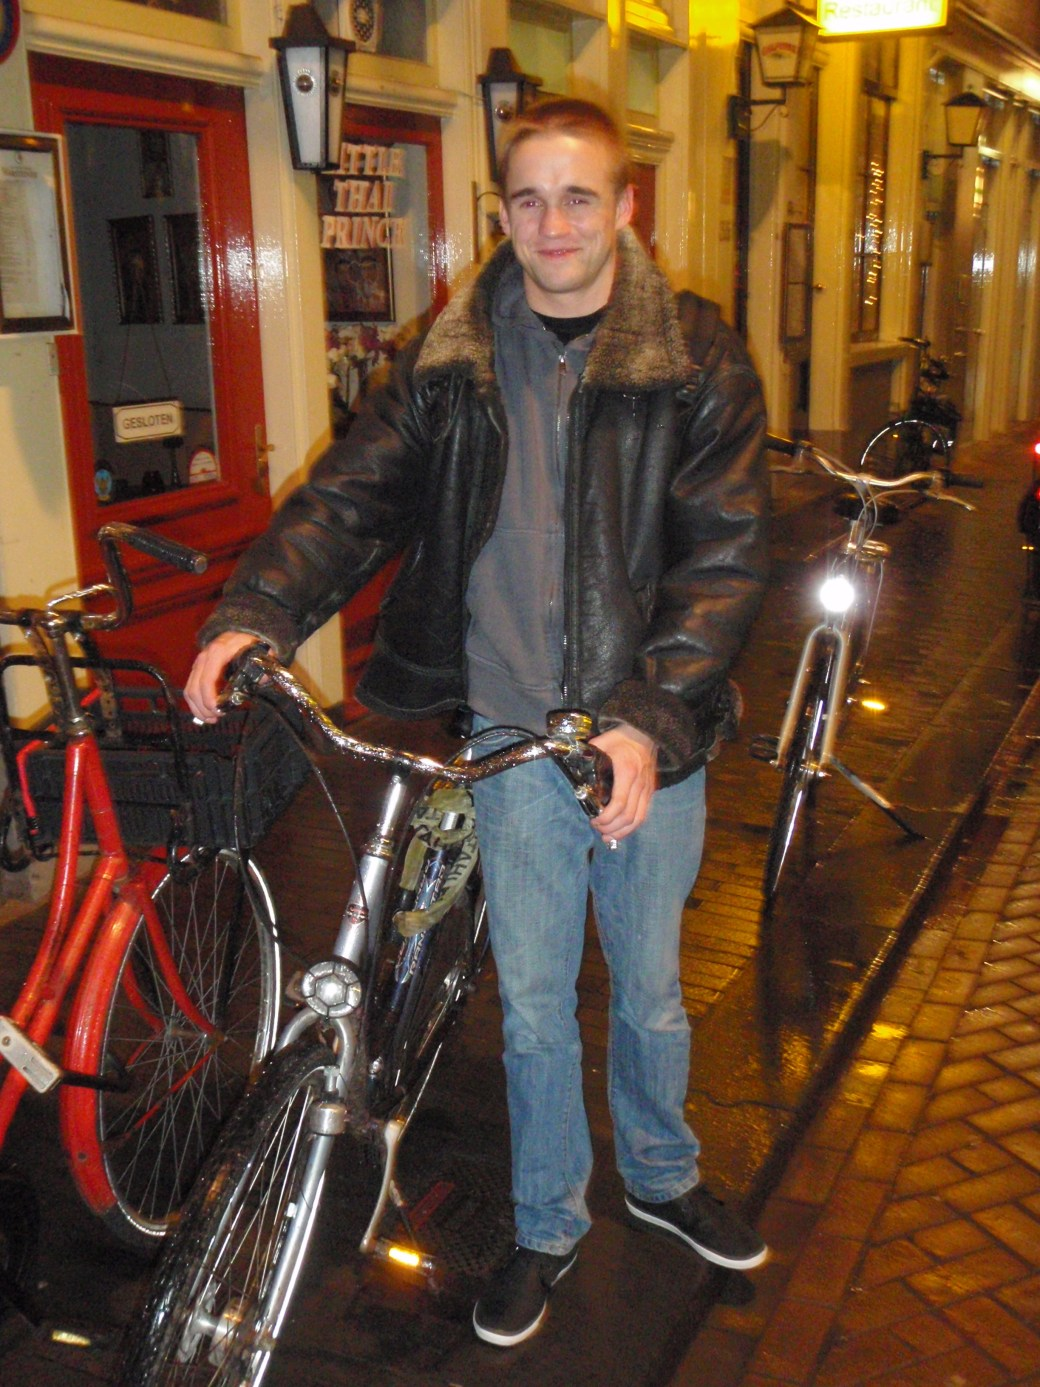 Cute Dutchman with Bike; Amsterdam, Netherlands; 2010